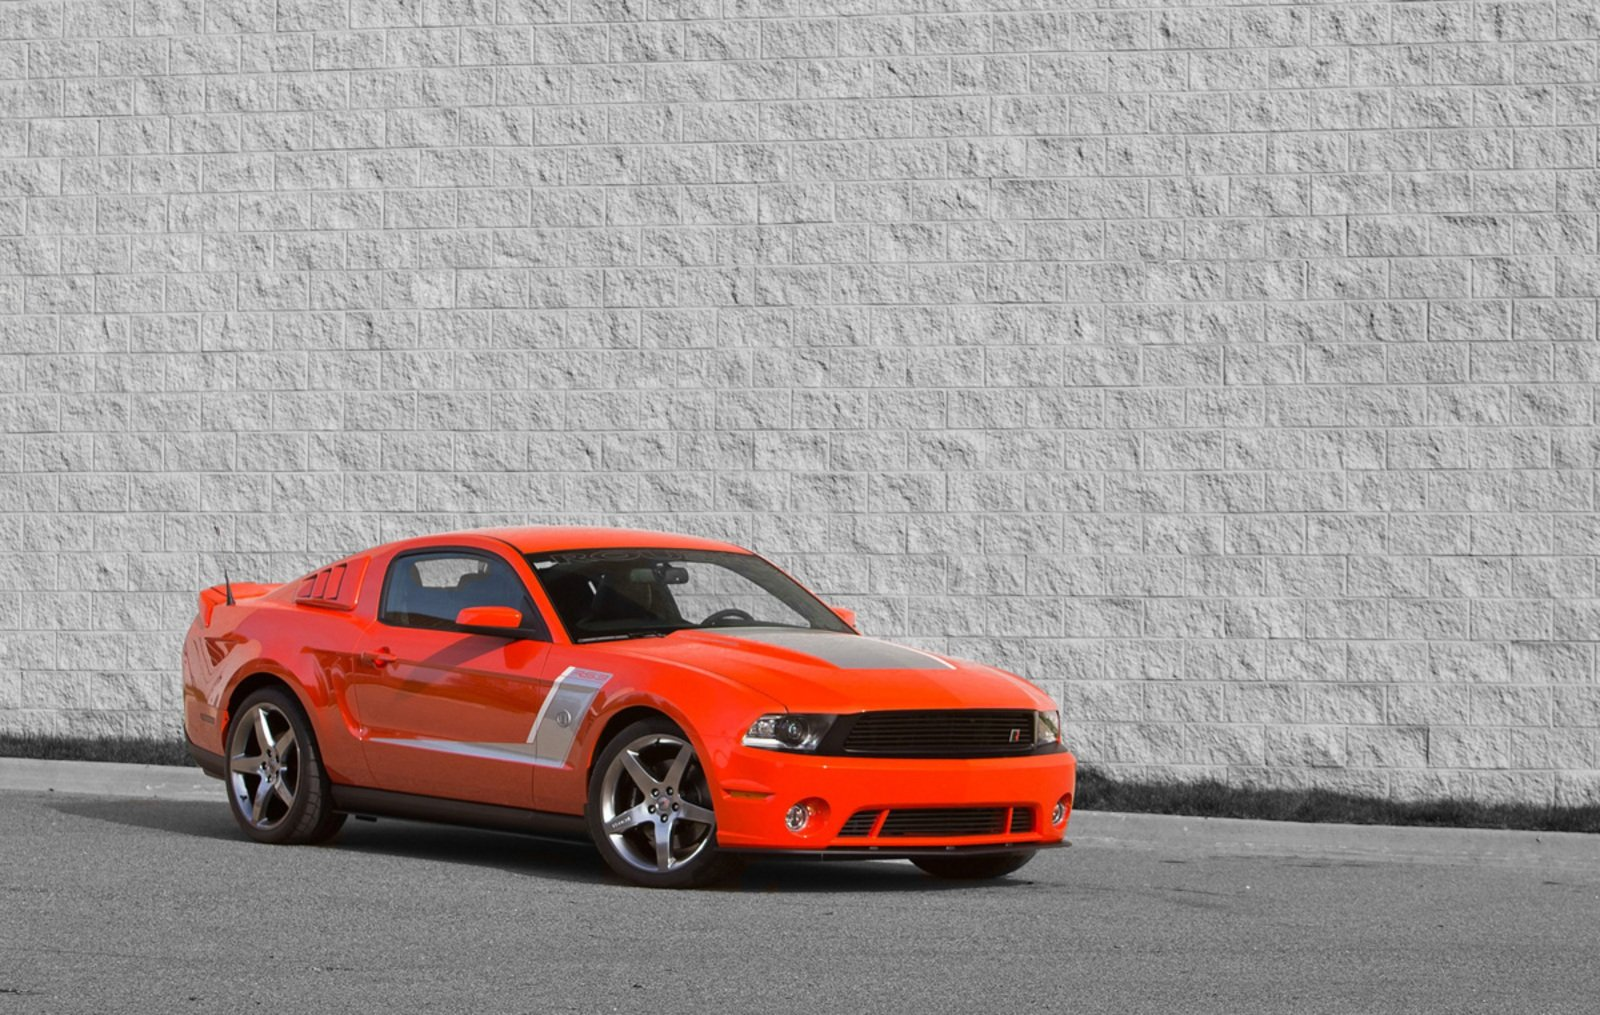 2012 ford mustang stage 3 premier edition by roush review top speed. Black Bedroom Furniture Sets. Home Design Ideas